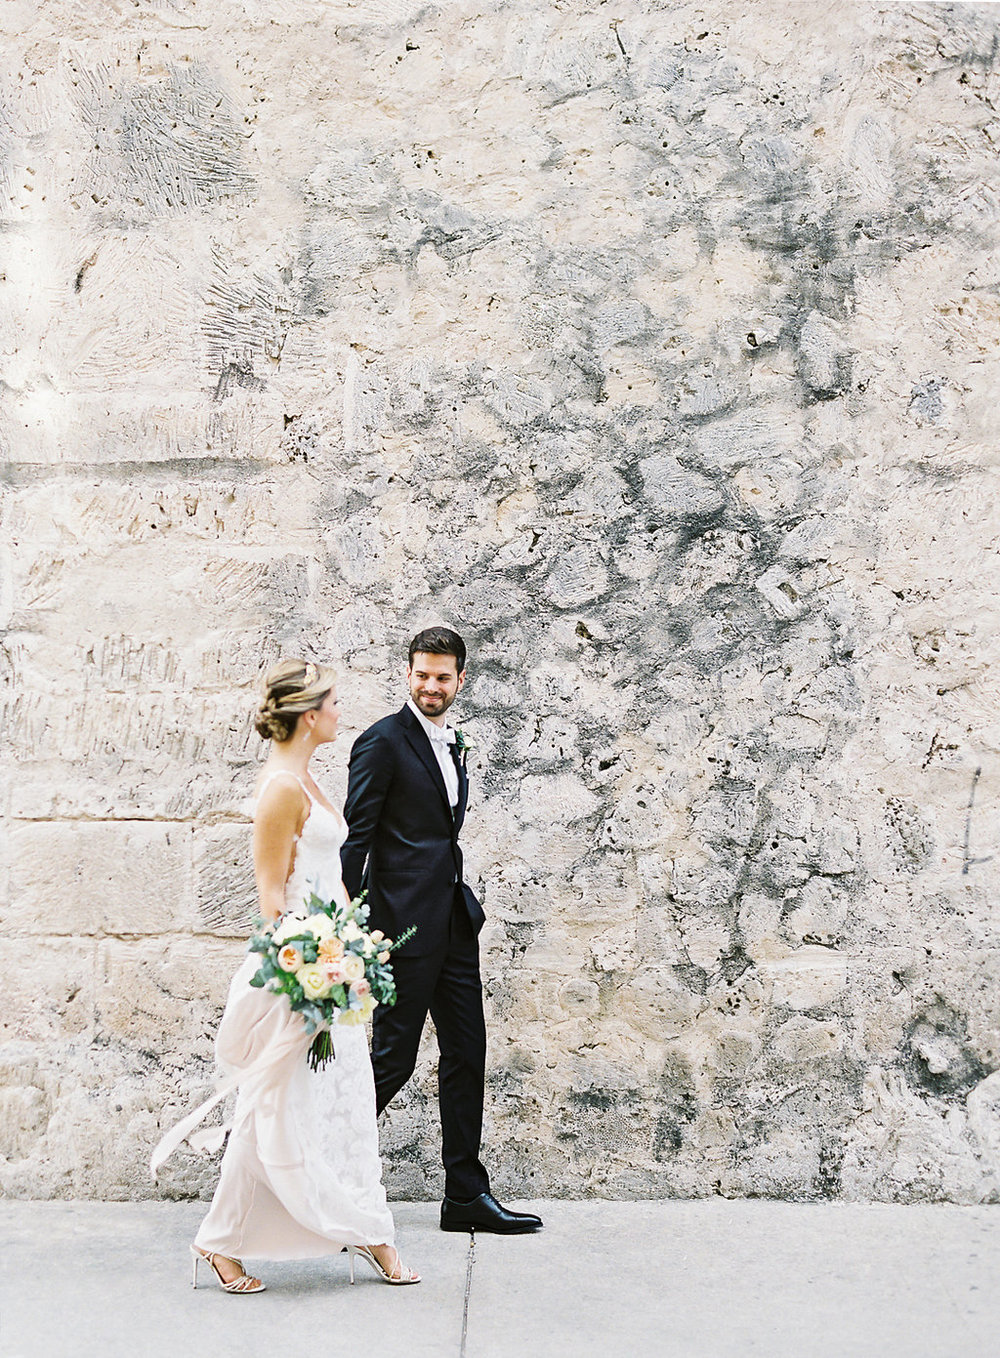 Fine art film photographer photography wedding engagement washington DC cartegena columbia destination modern bride inspiration inspired classic timeless california ny photos styling travel